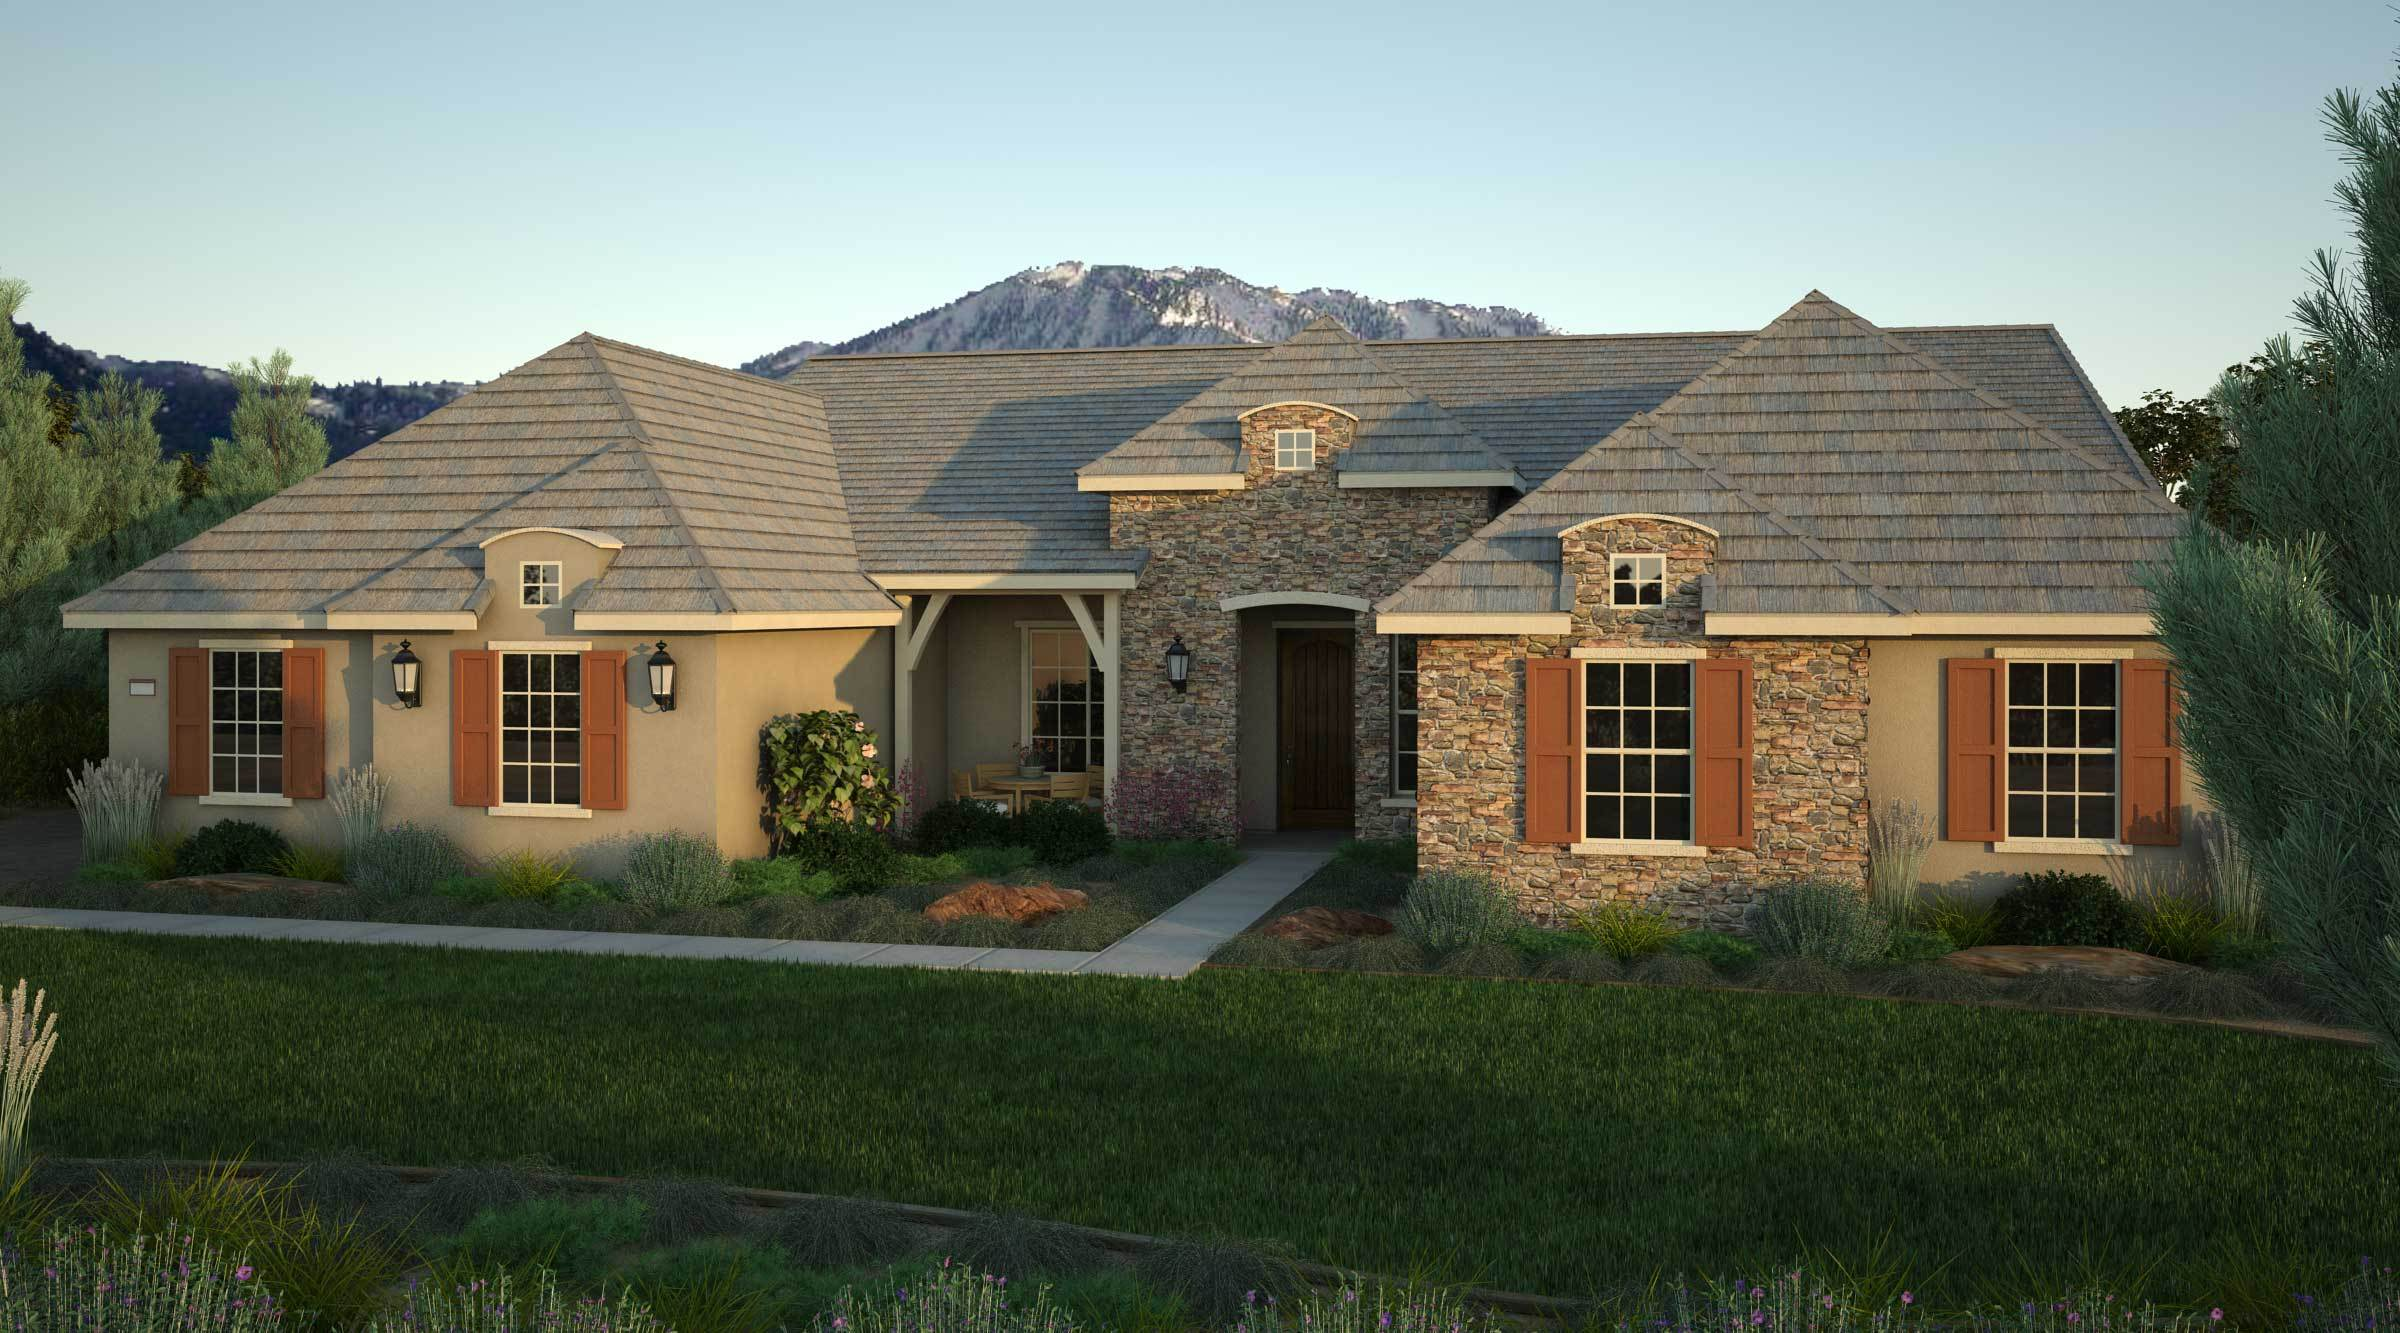 Le Chardonnay - Monte Vista: Reno, NV - Tim Lewis Communities